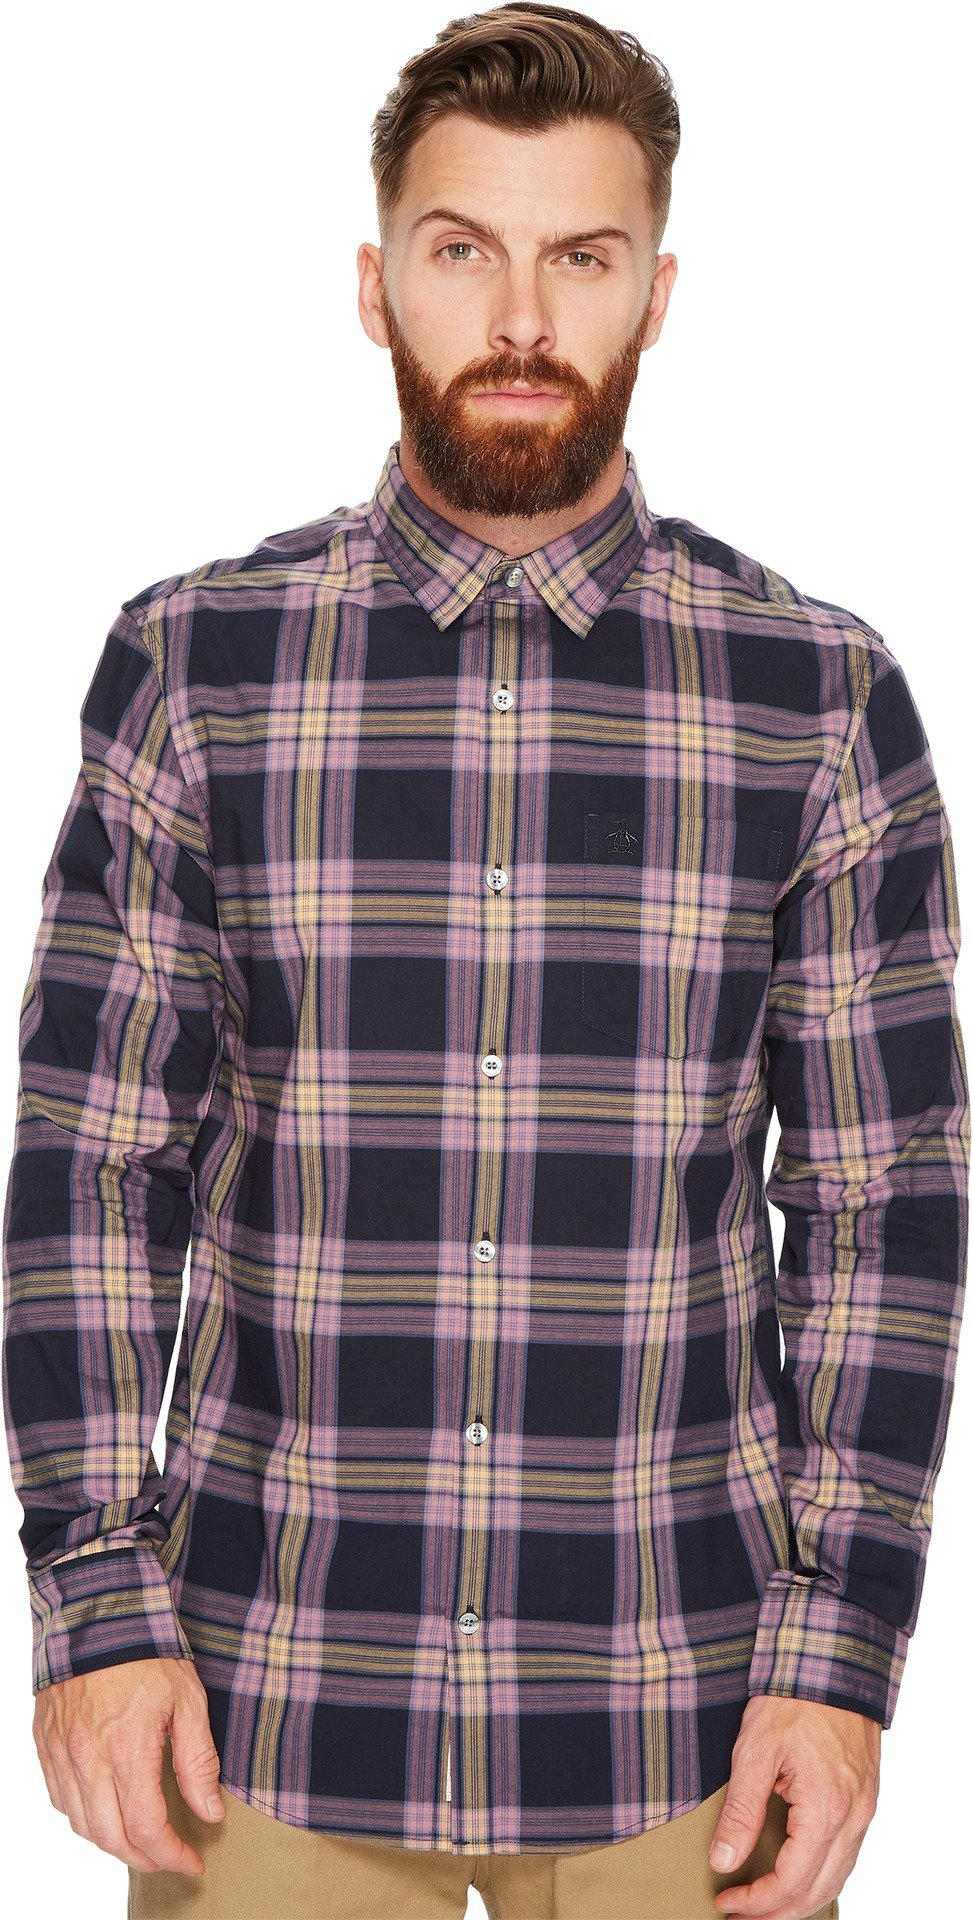 Original Penguin Men's Long Sleeve P55 Plaid Stretch Shirt, Dark Sapphire, Medium by Original Penguin (Image #1)